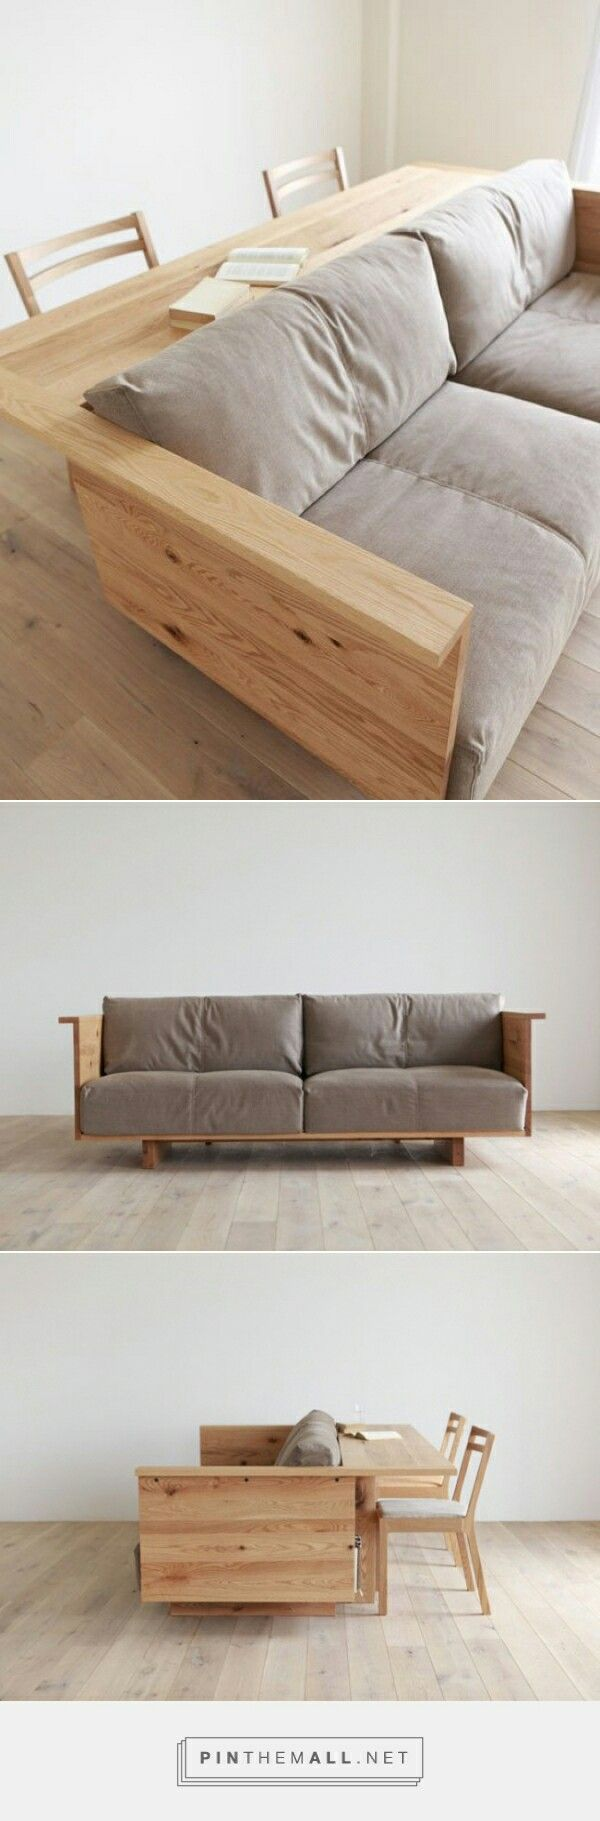 Clever Sofa Storage Small Space Home Interior Saving Table